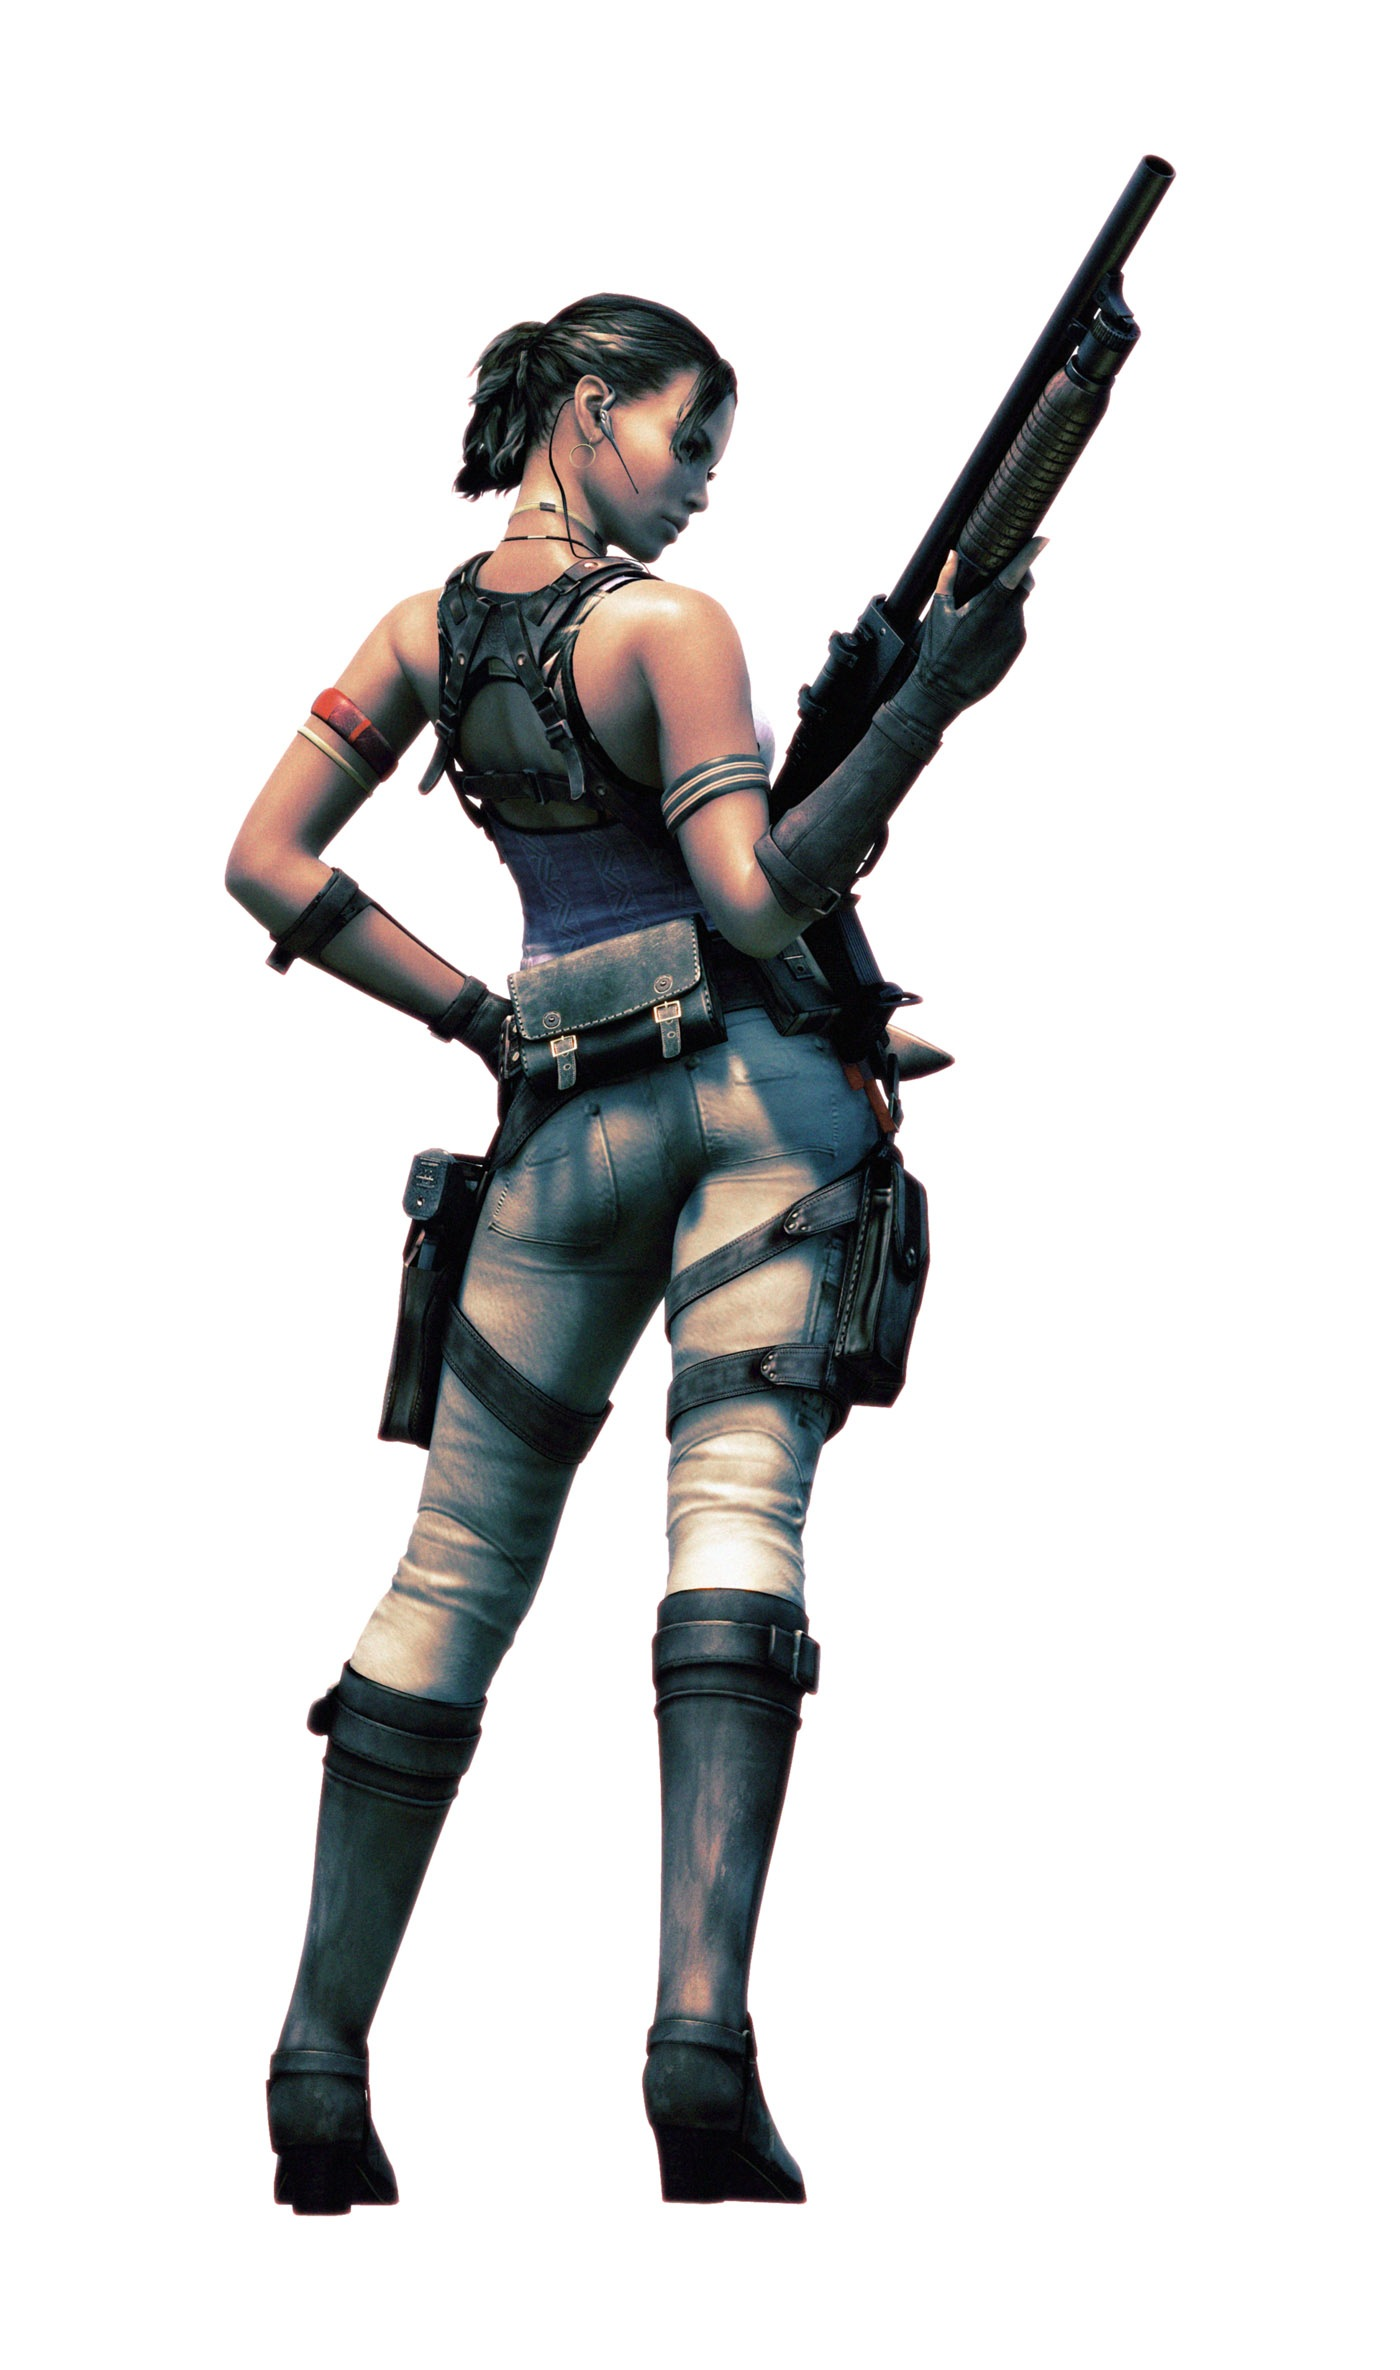 Resident Evil 5 Characters Renders Addicted To Ludus